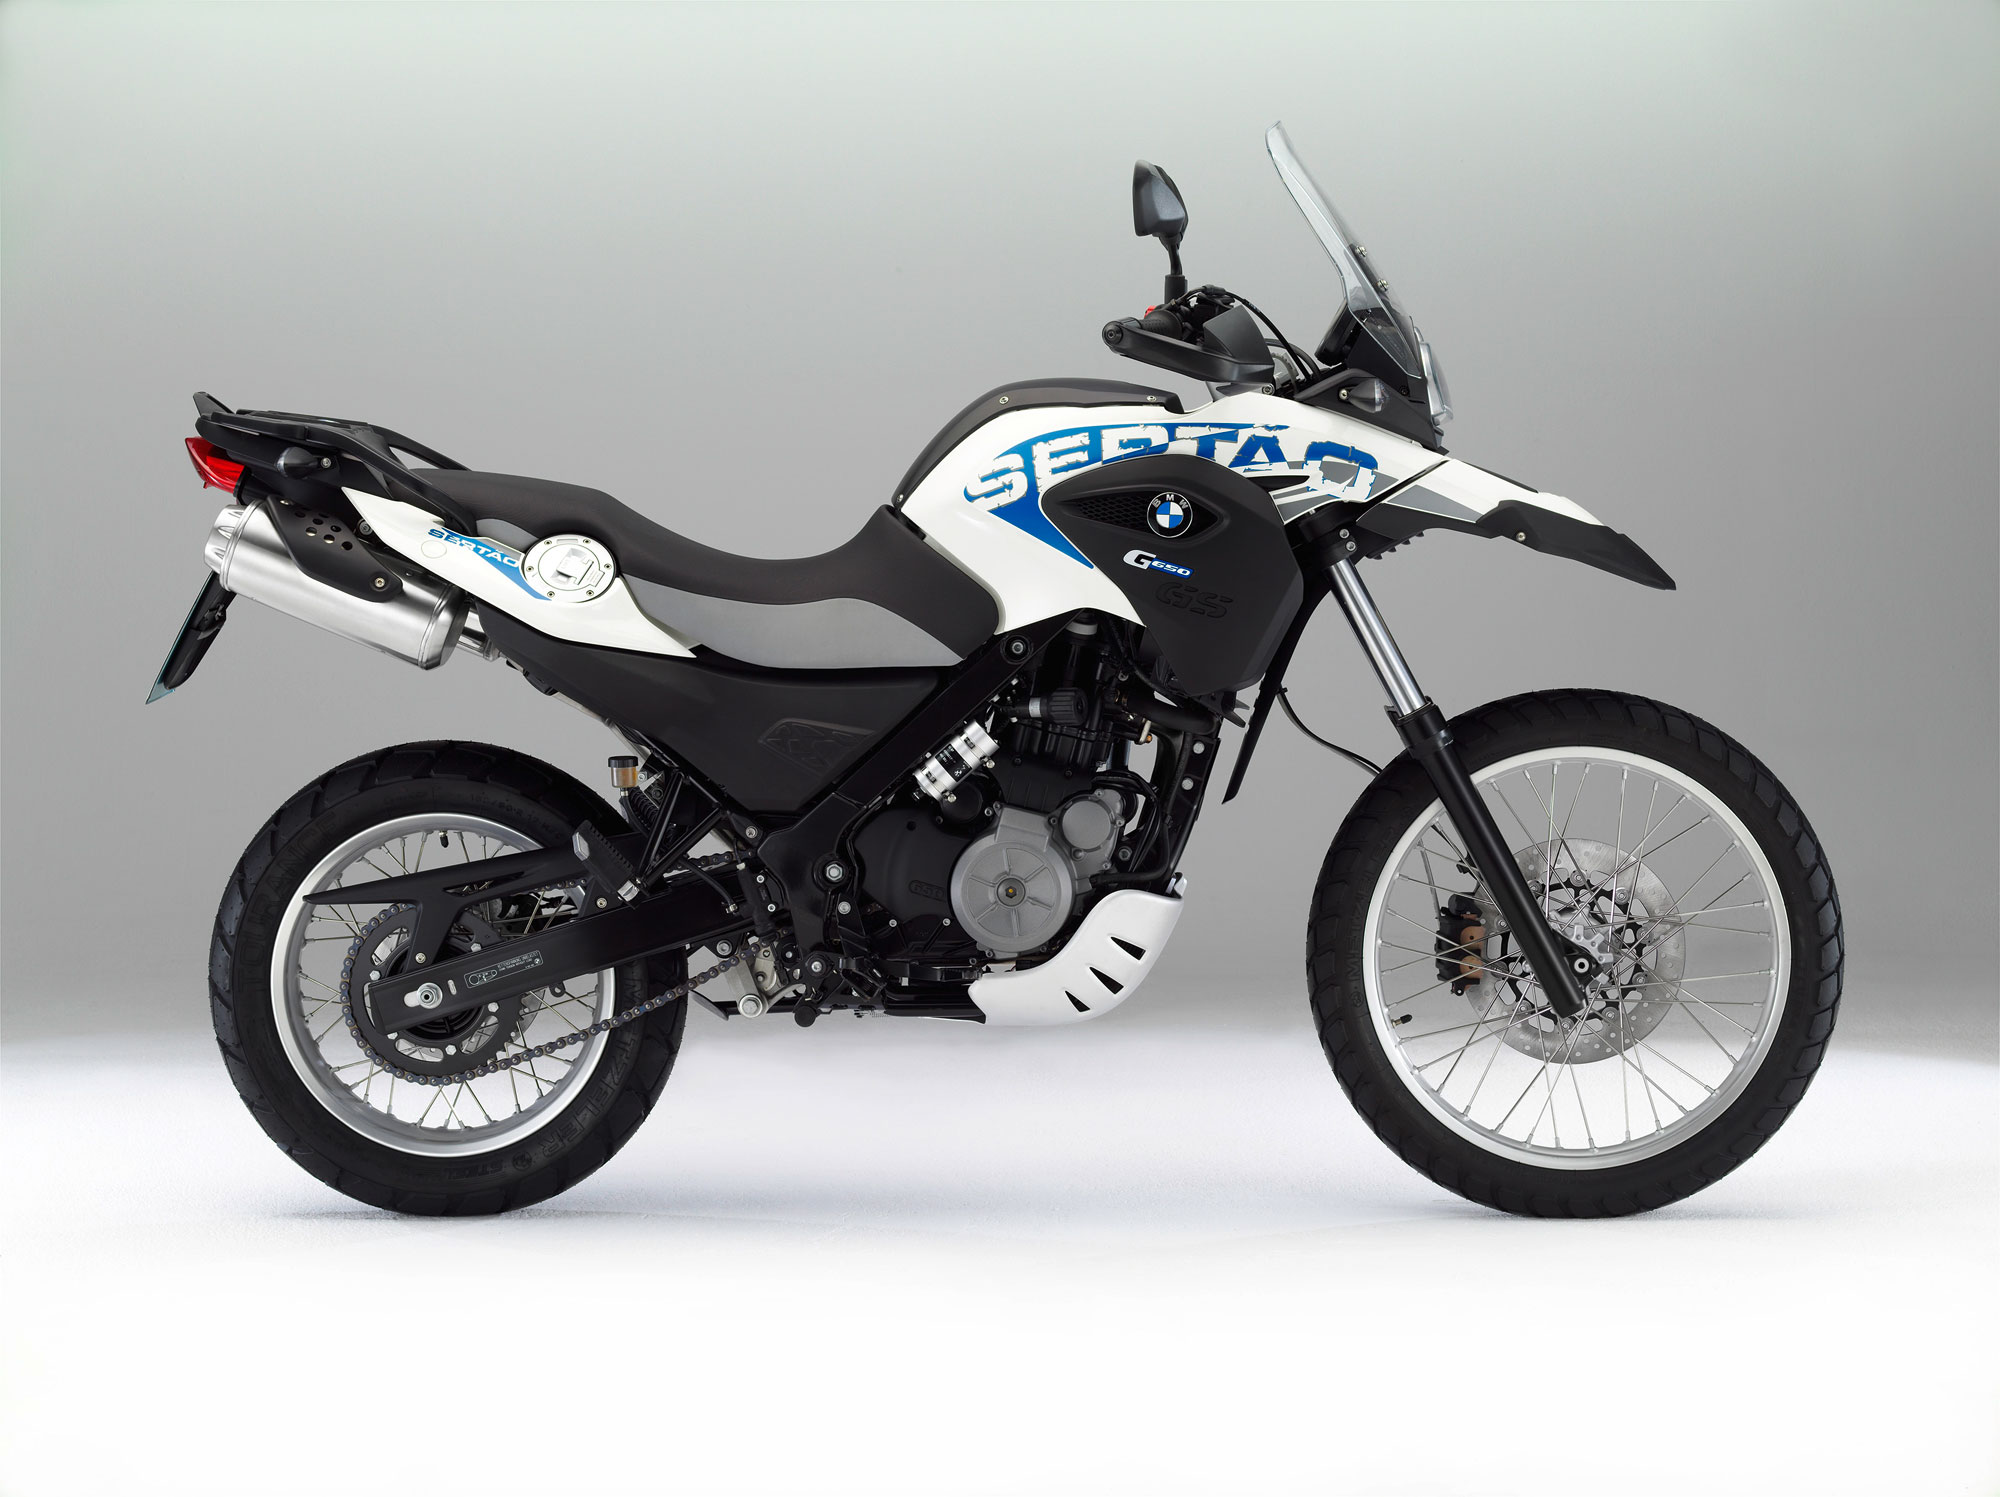 2012 BMW G650GS Sertao - Did BMW get it right this time? | Adventure ...